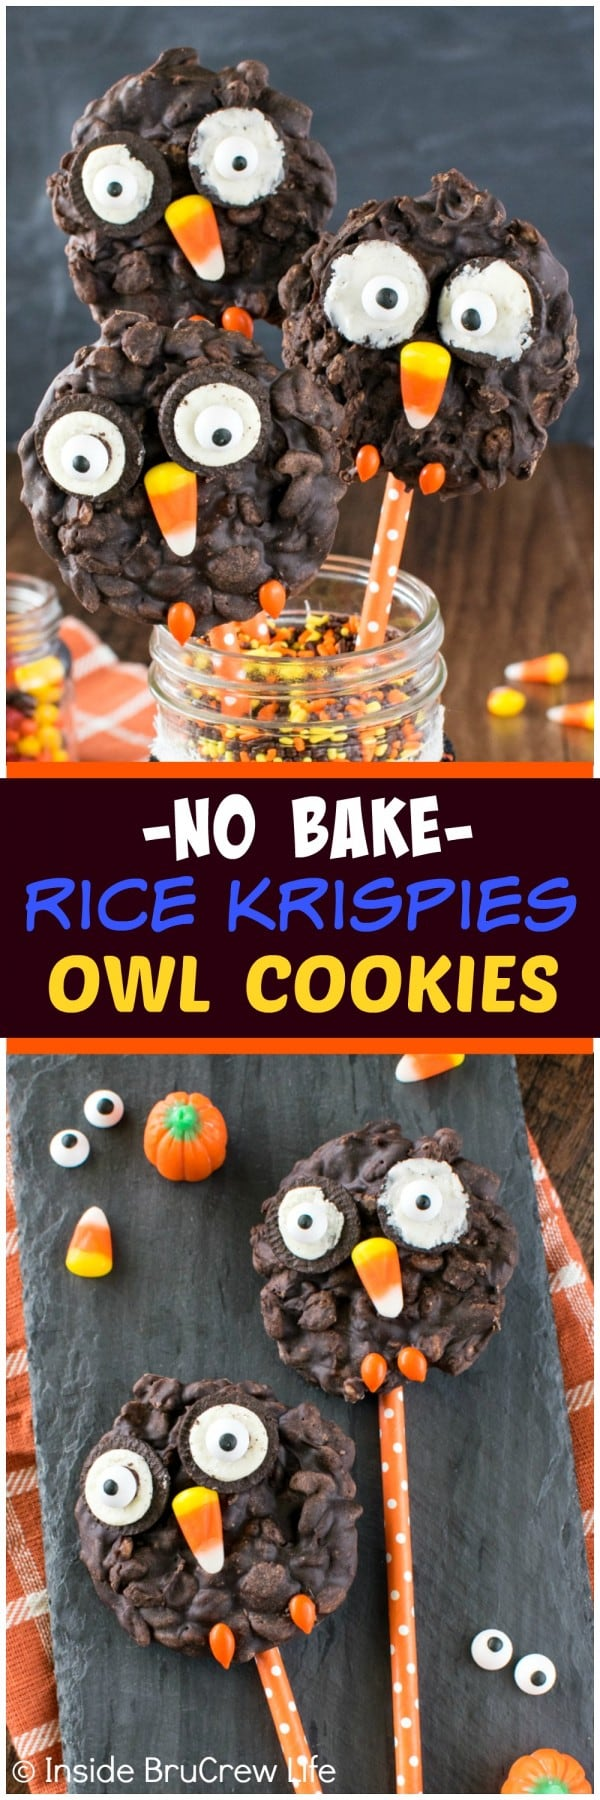 No Bake Rice Krispies Owl Cookies - cookies and candies add a fun twist to these easy no bake cookies. Great treat to share at fall parties!